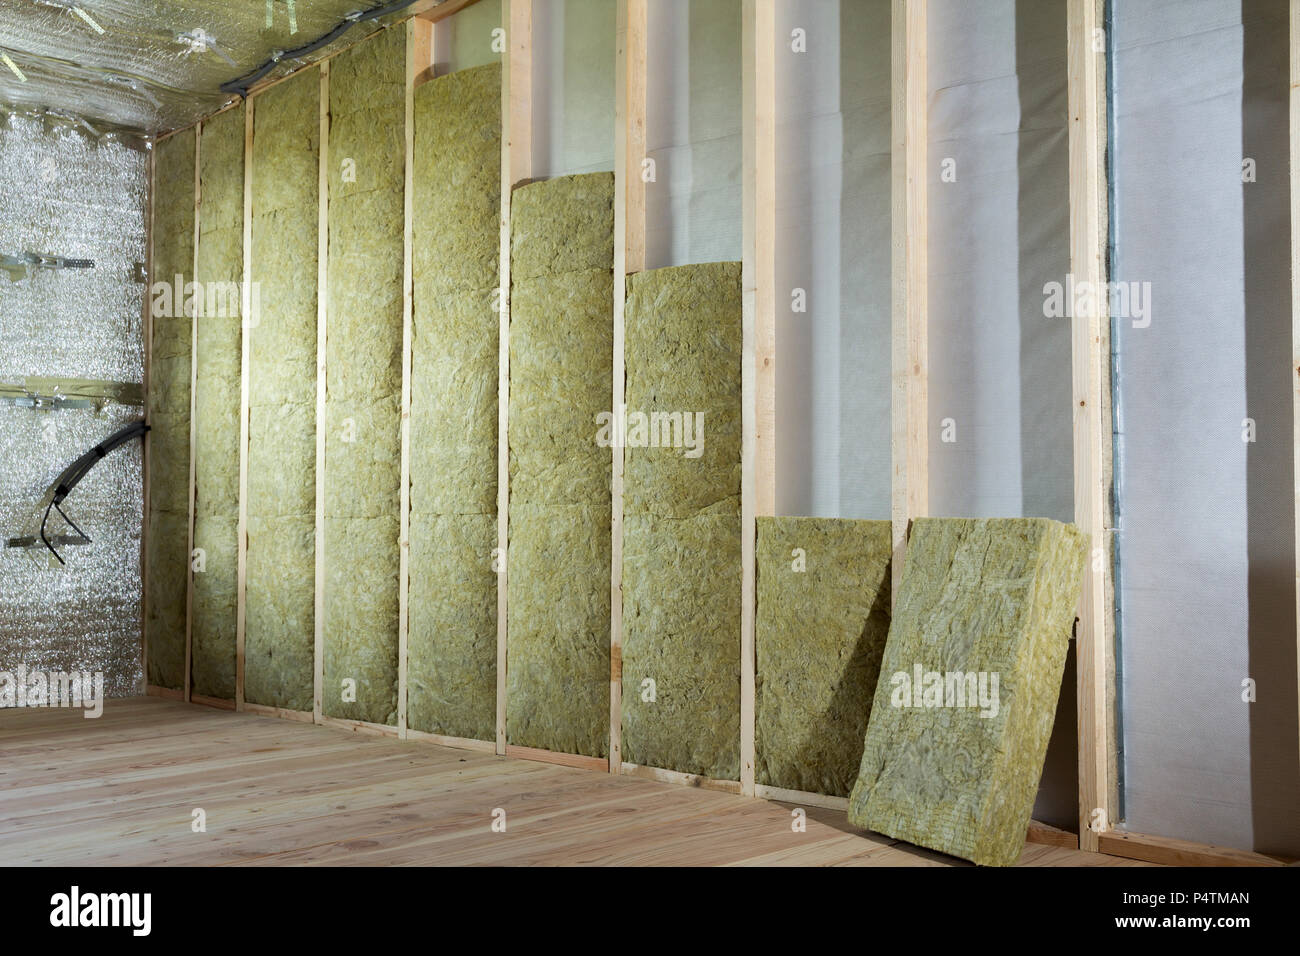 Wooden frame for future walls insulated with rock wool and ...